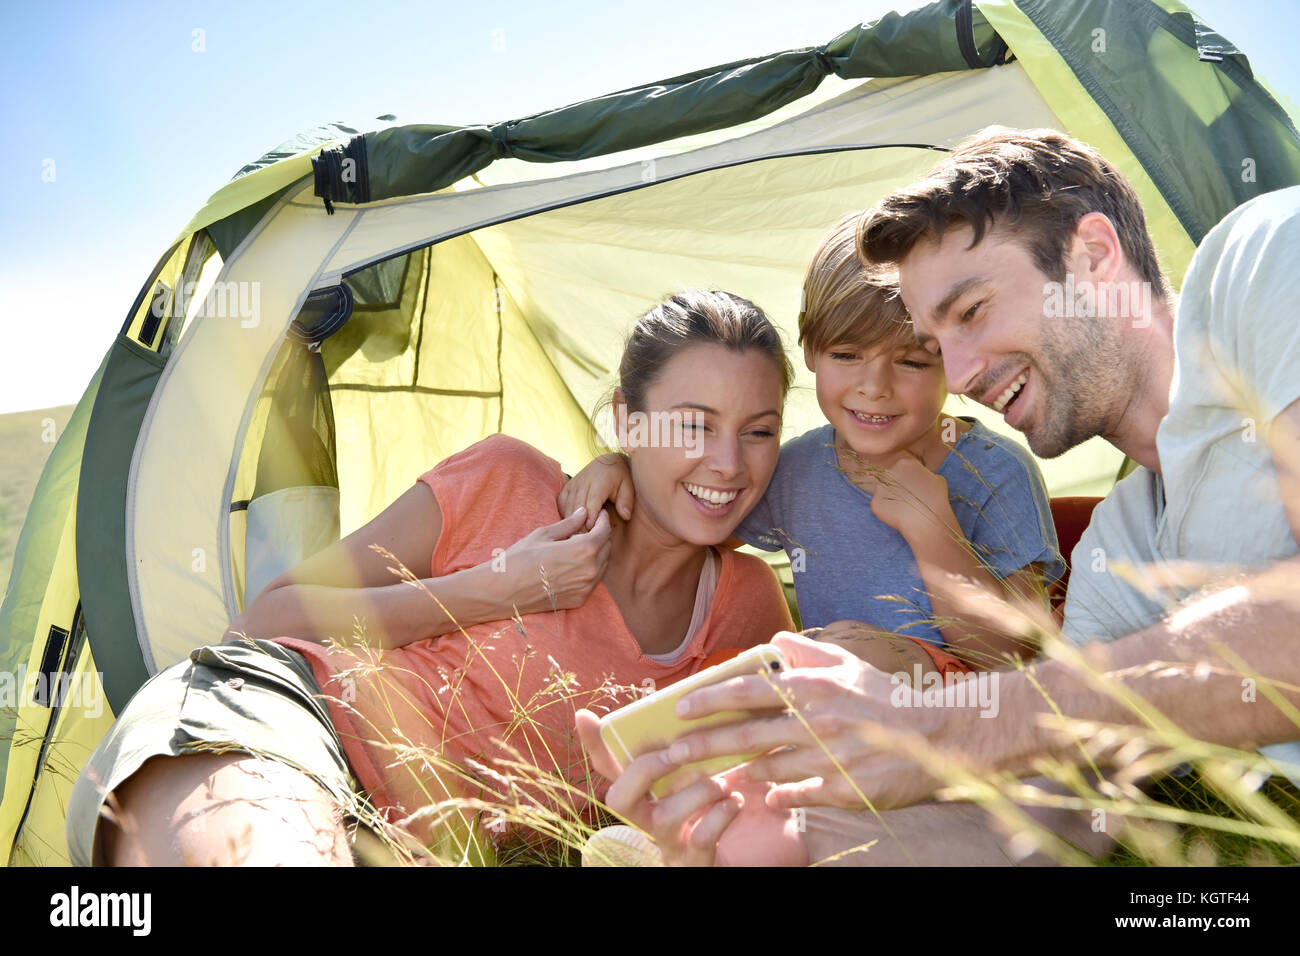 Family in camping tent playing with smartphone - Stock Image